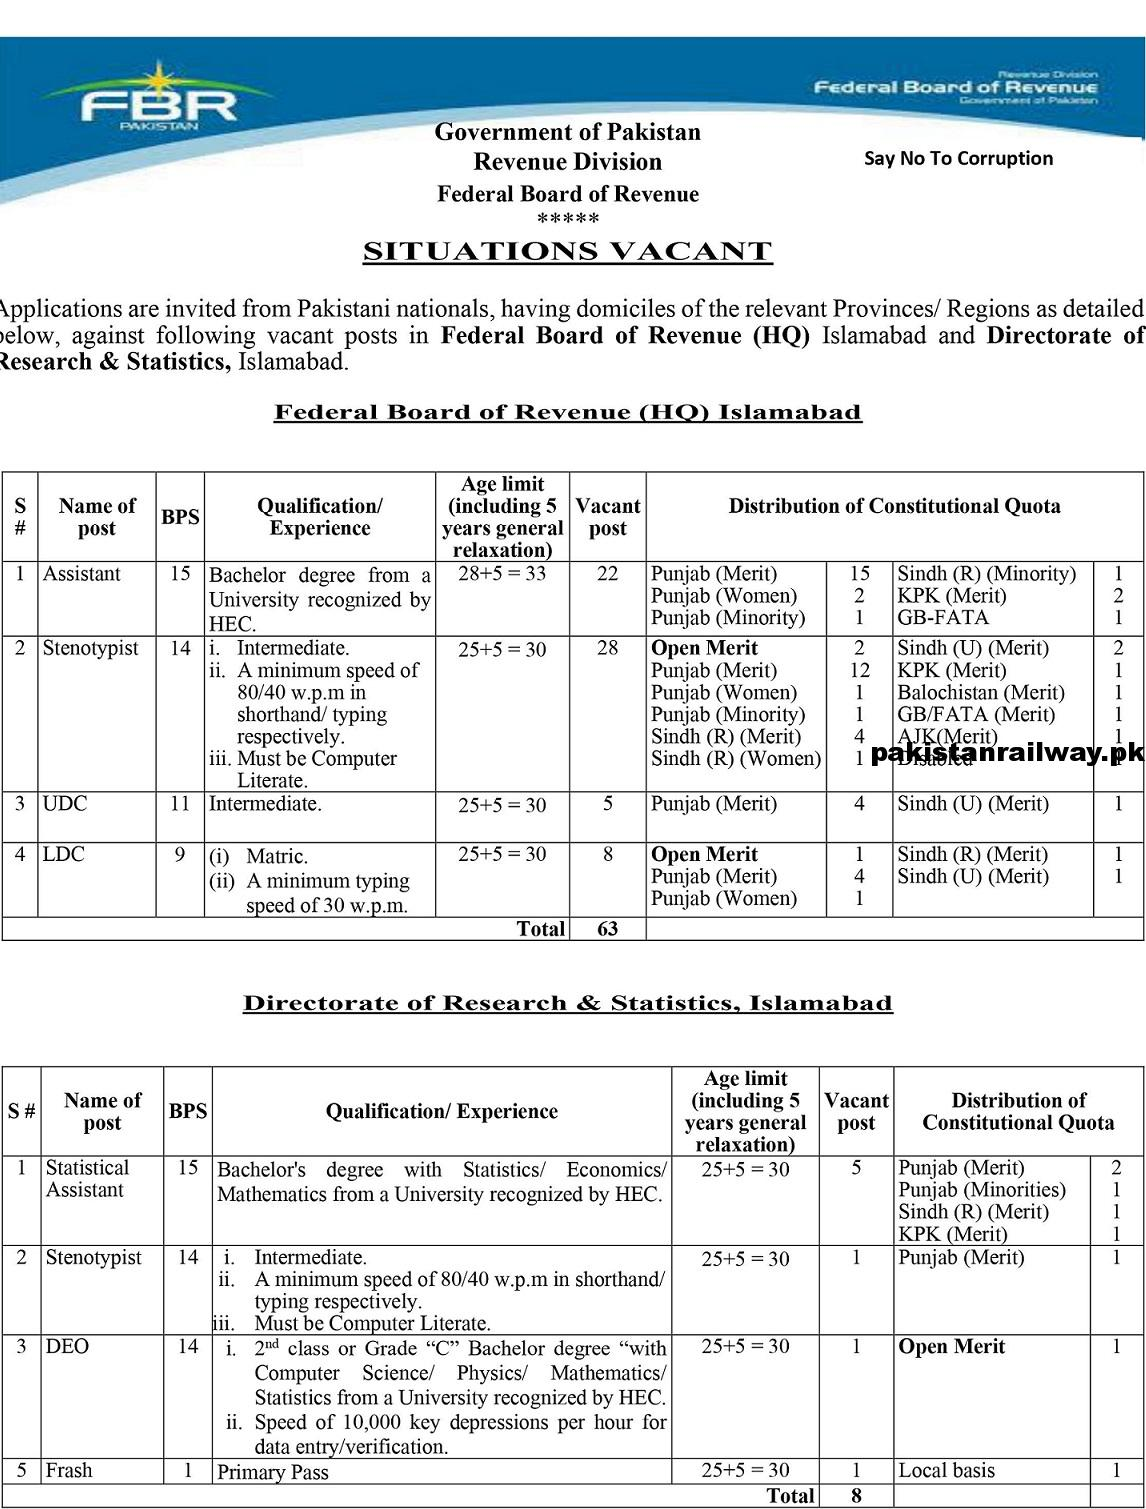 Government jobs in Pakistan 2021 Matric Base At FBR Federal Board of Revenue